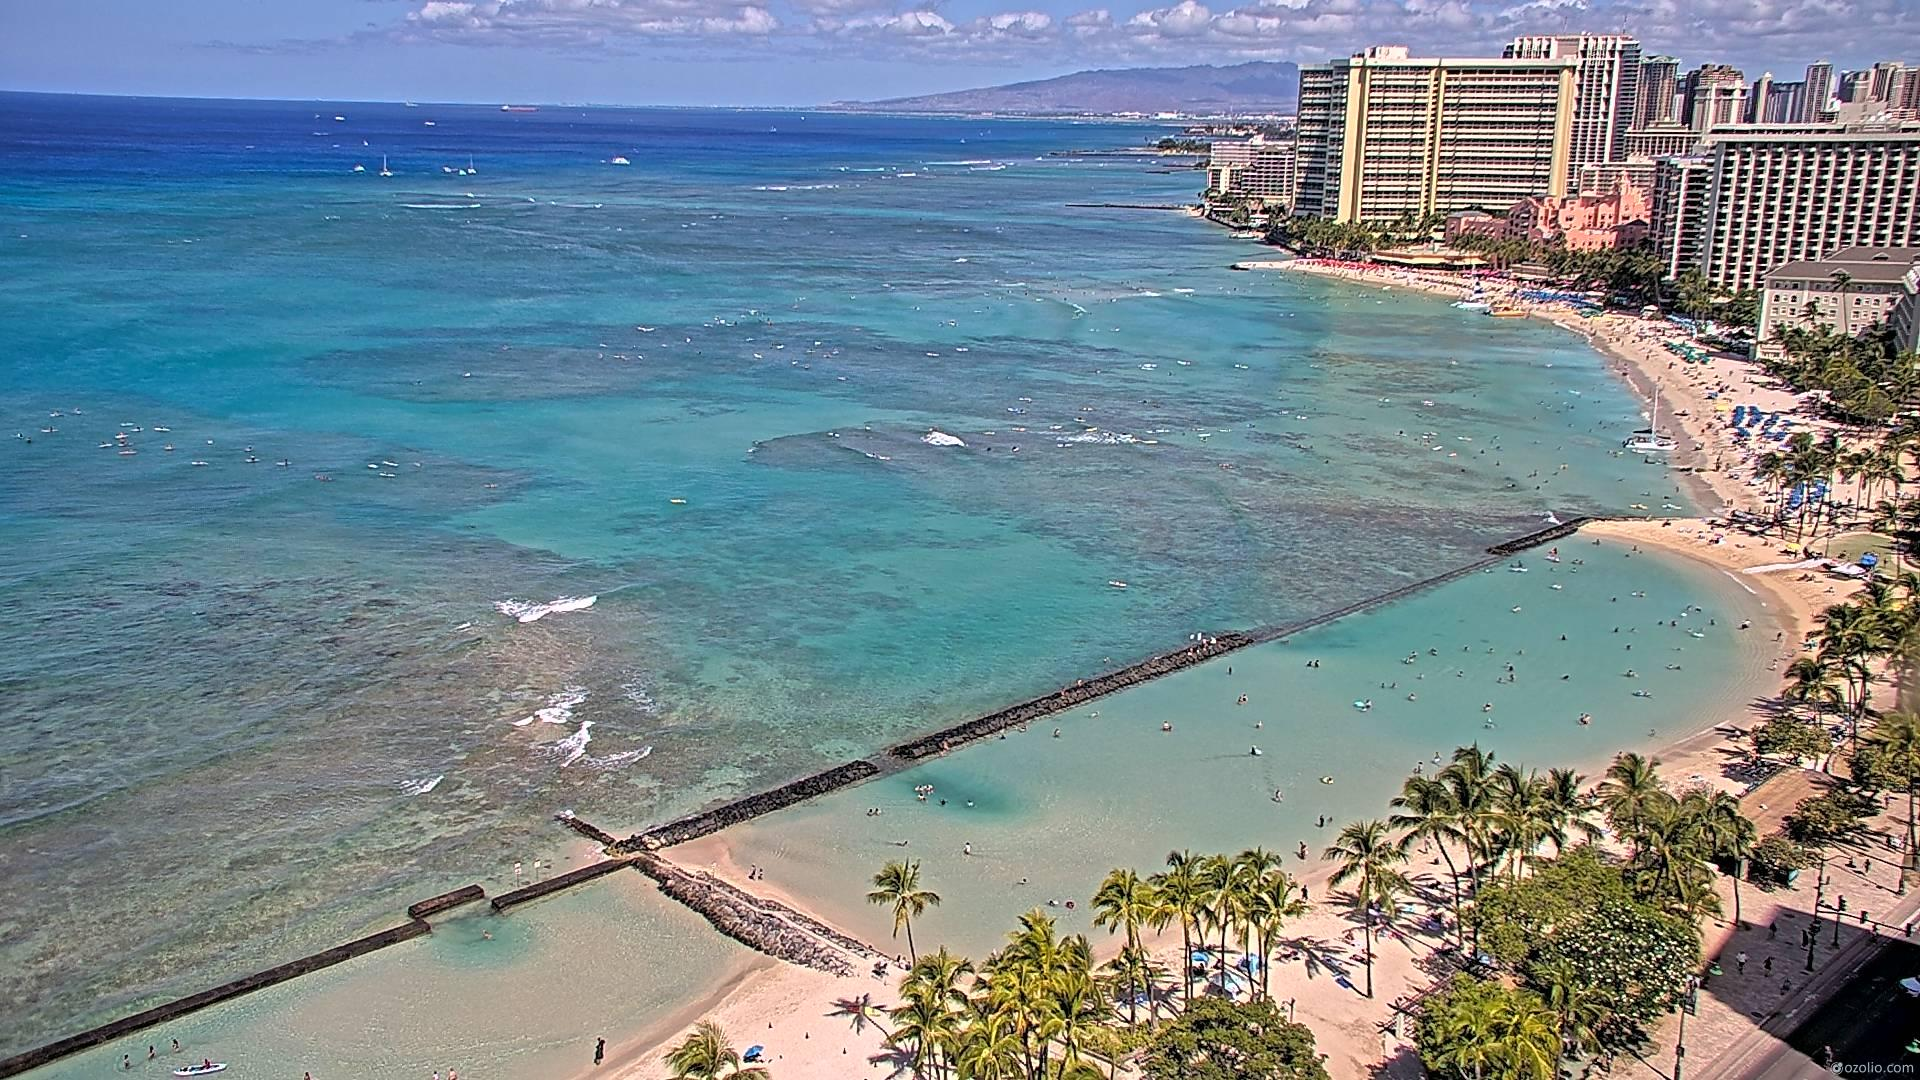 Waikiki Beach, Hawaii Fri. 10:16